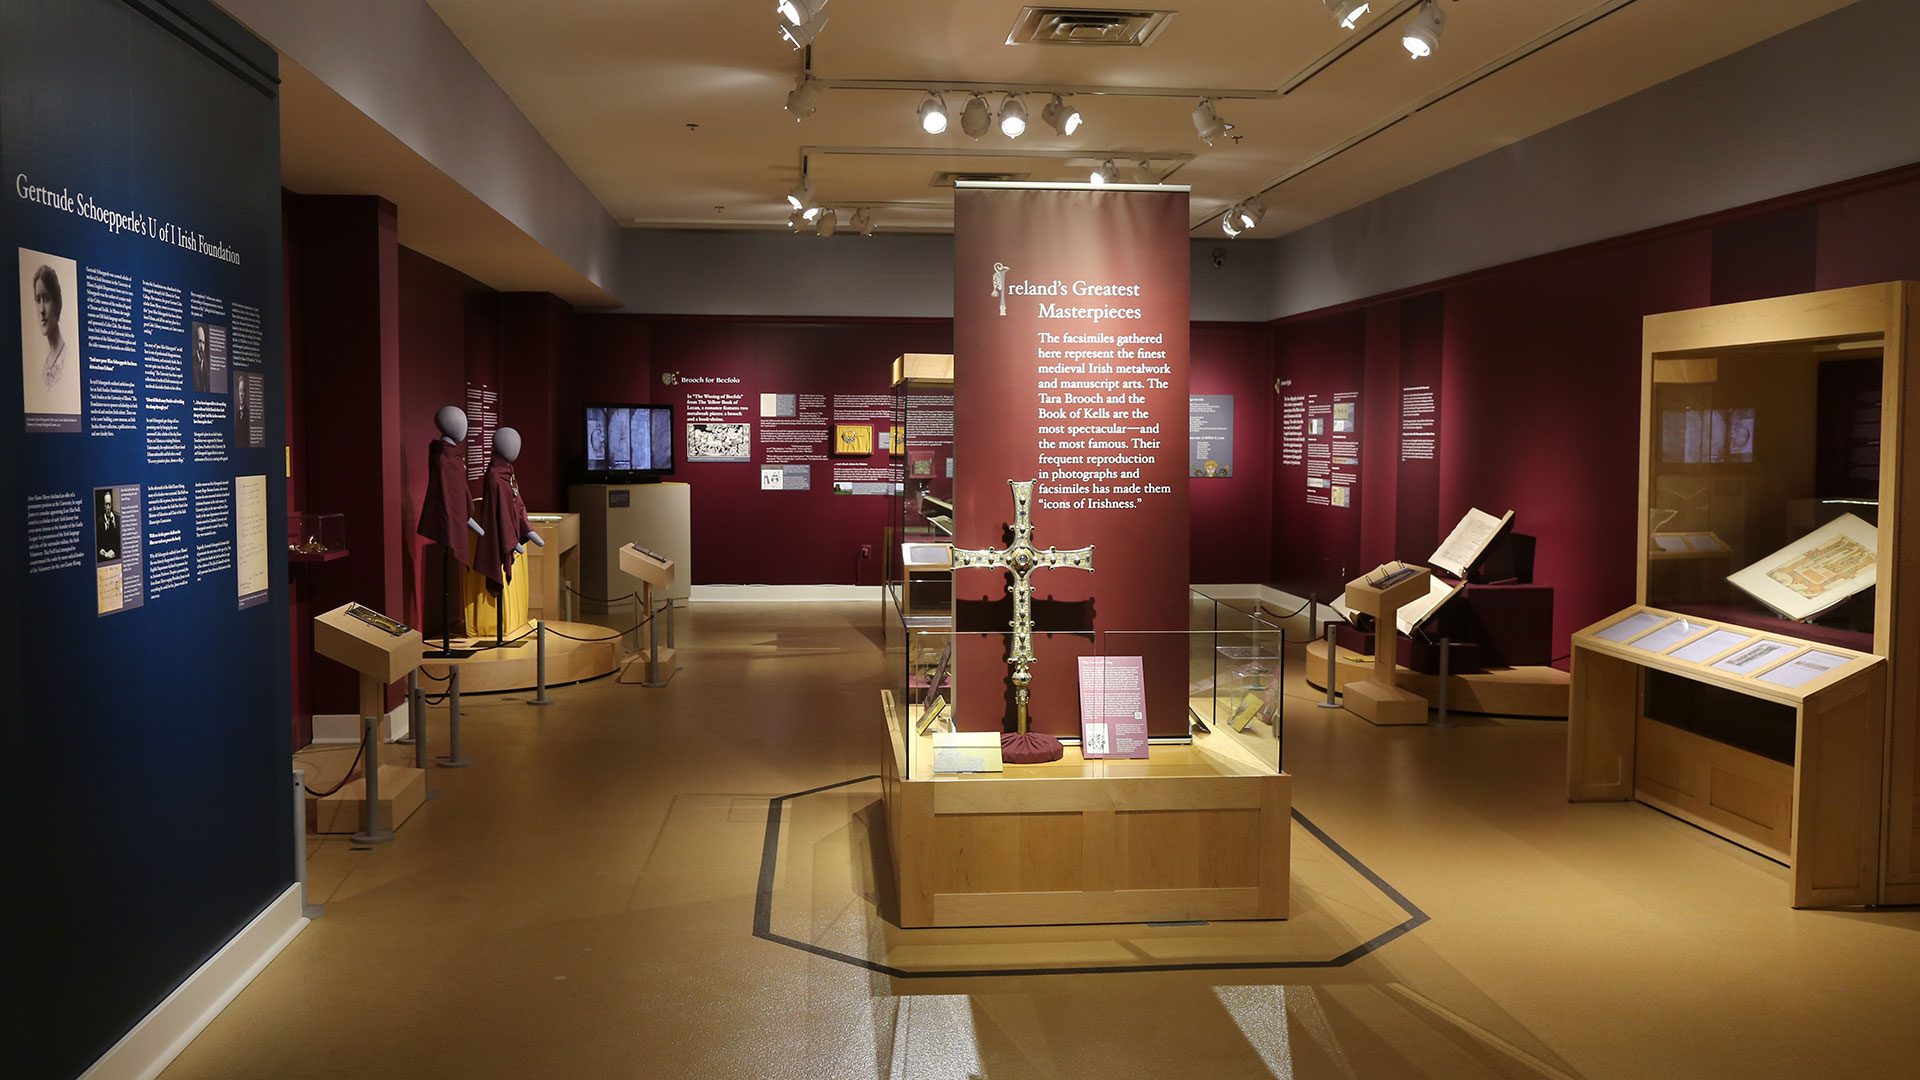 Overall view of Medieval Irish Masterpieces Exhibit